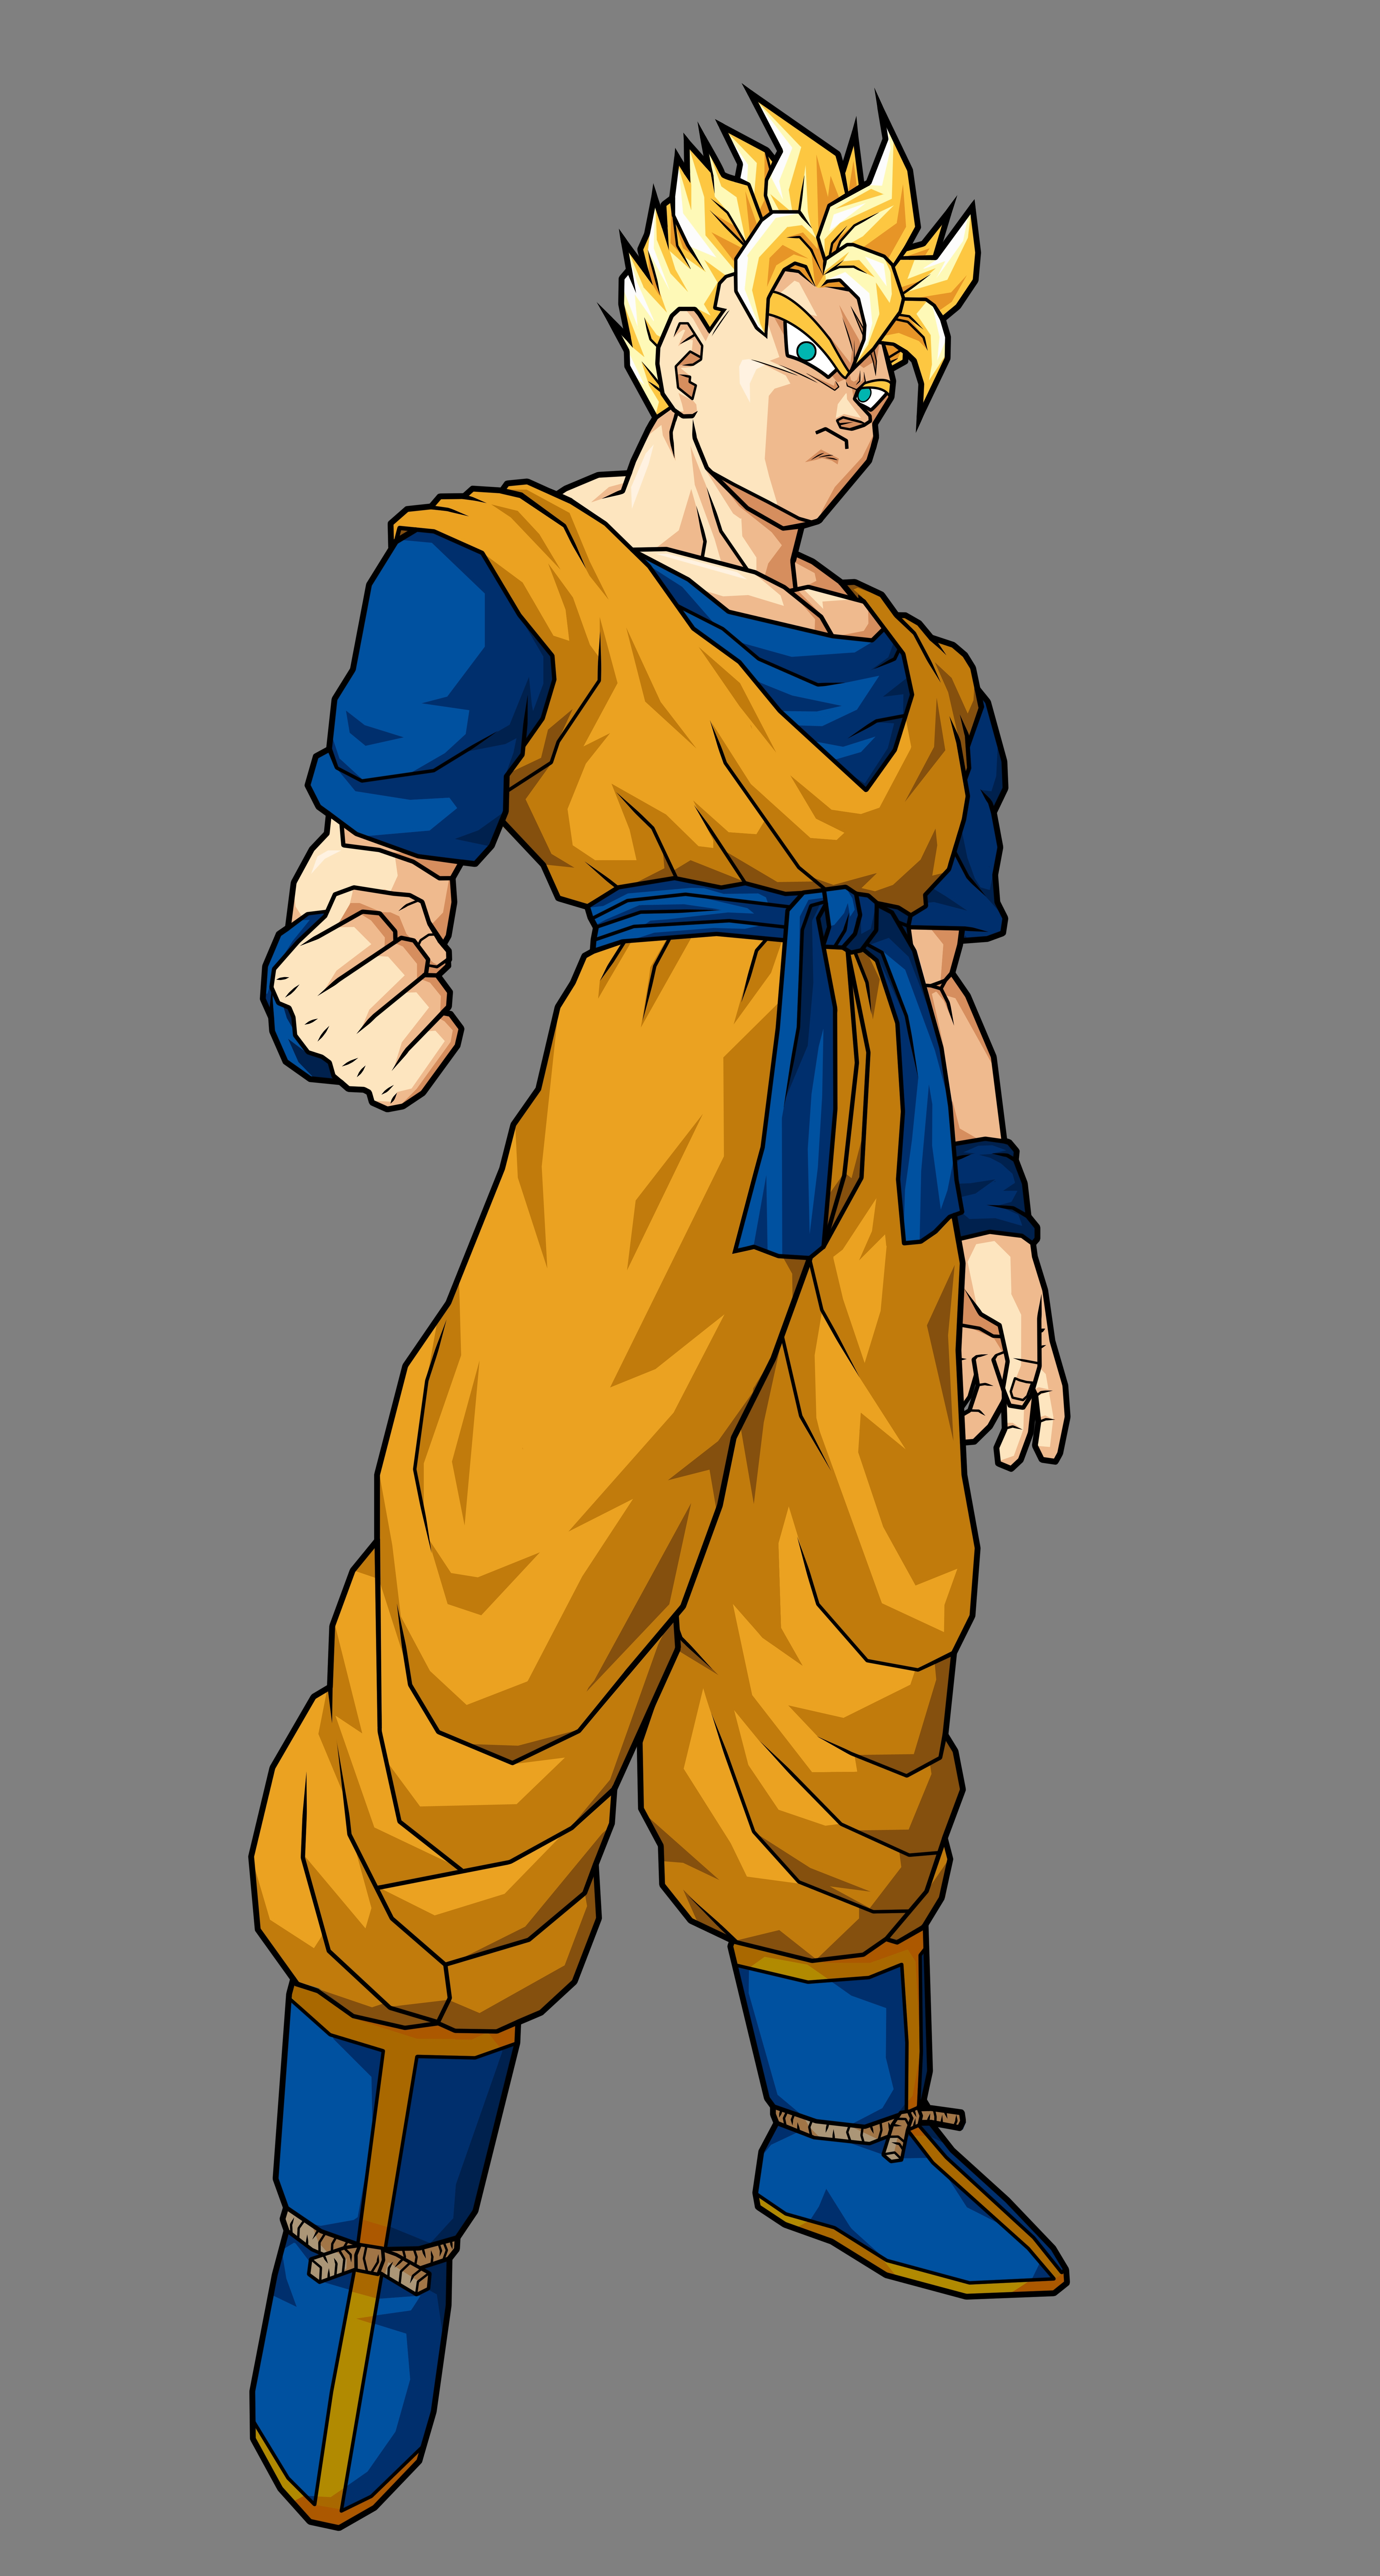 El mundo de dragon ball - Dragon ball z gohan images ...